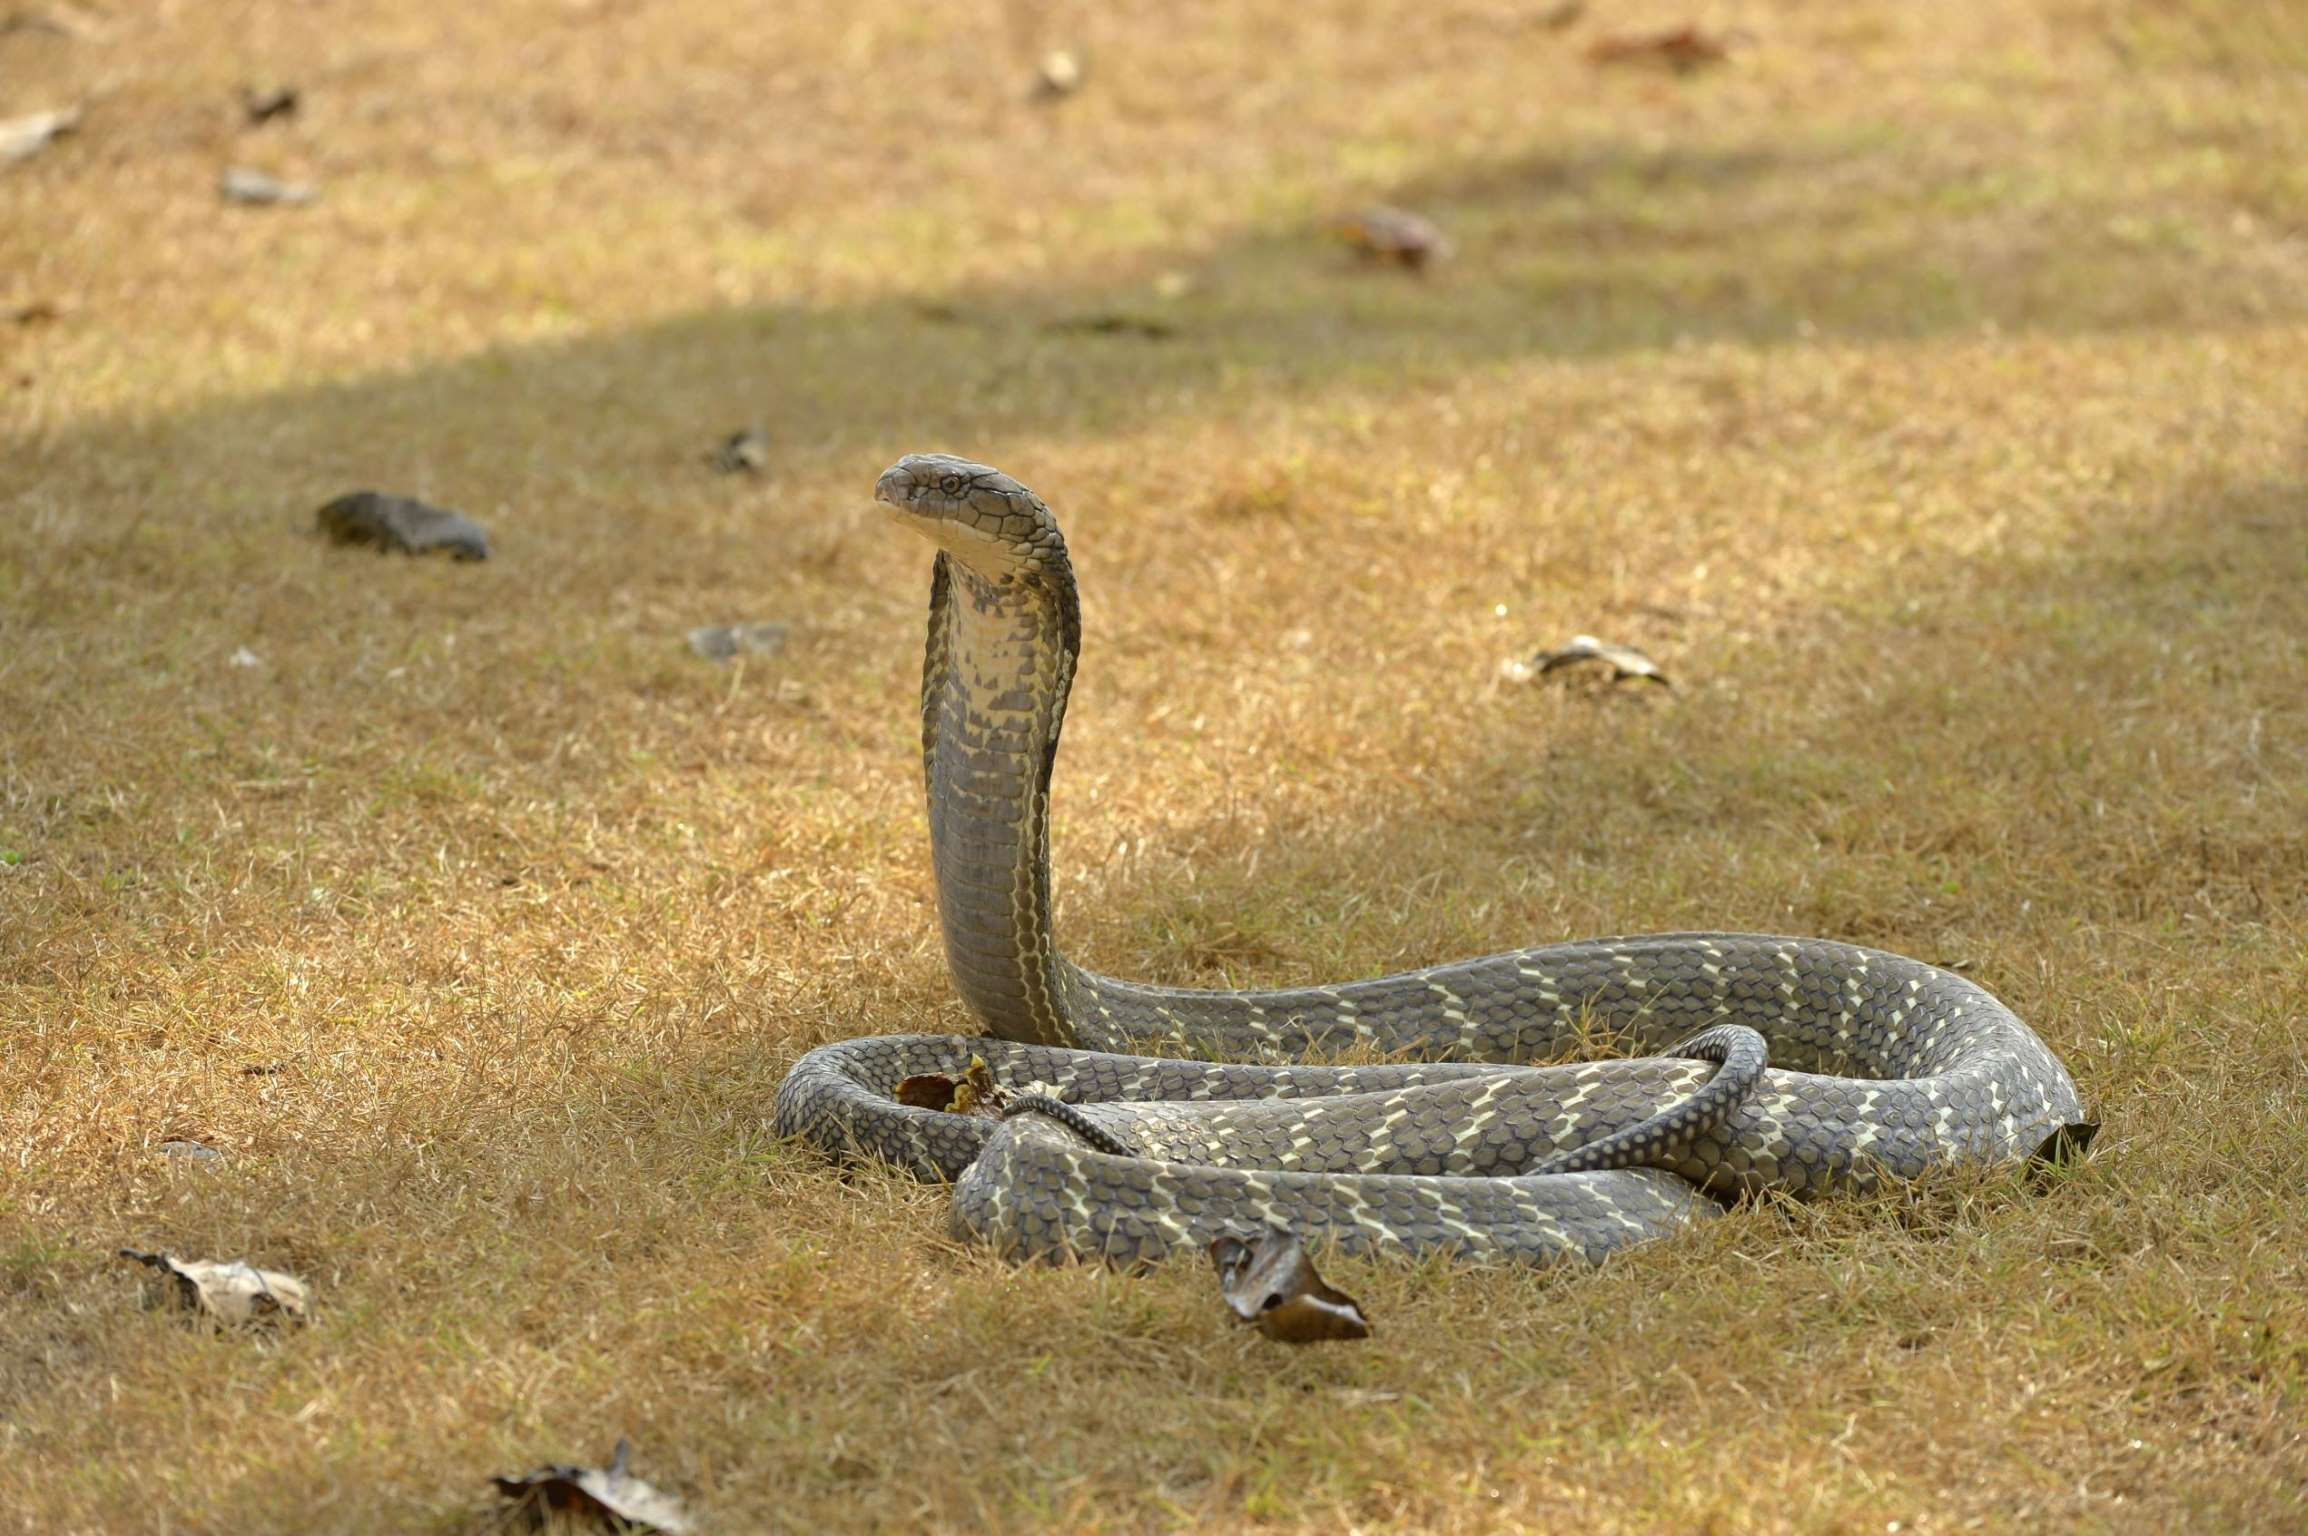 Indian Cobra What S It Smiling About Just Spotted Lunch With